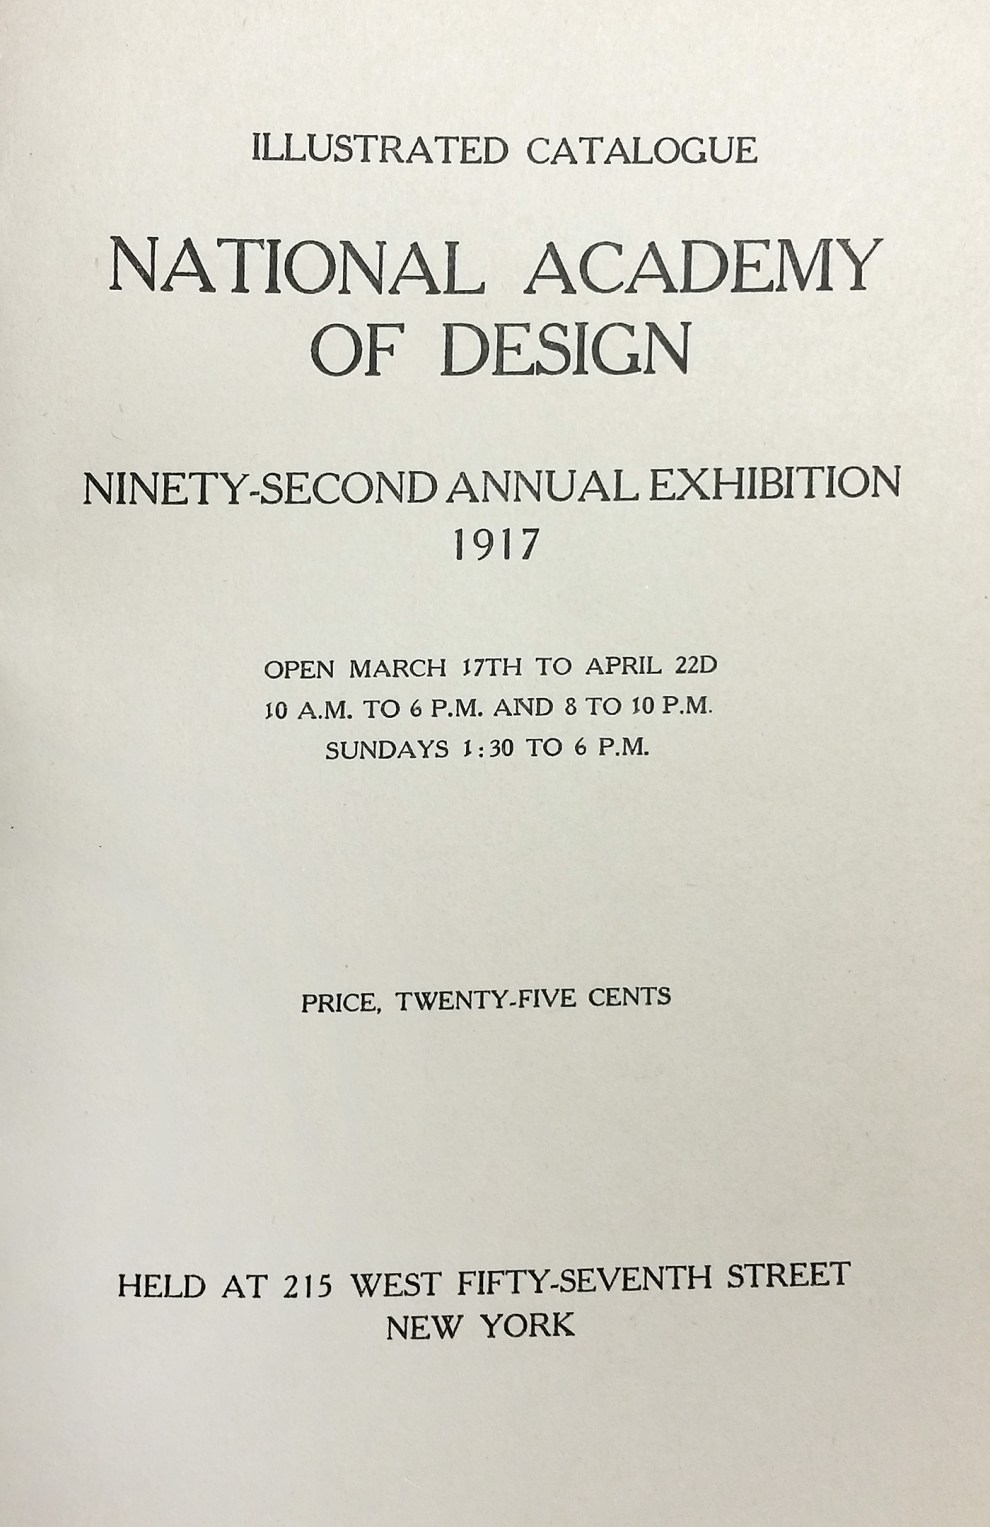 """1917 National Academy of Design, New York, NY, """"Ninety-Second Annual Exhibition"""", March 17 - April 22"""